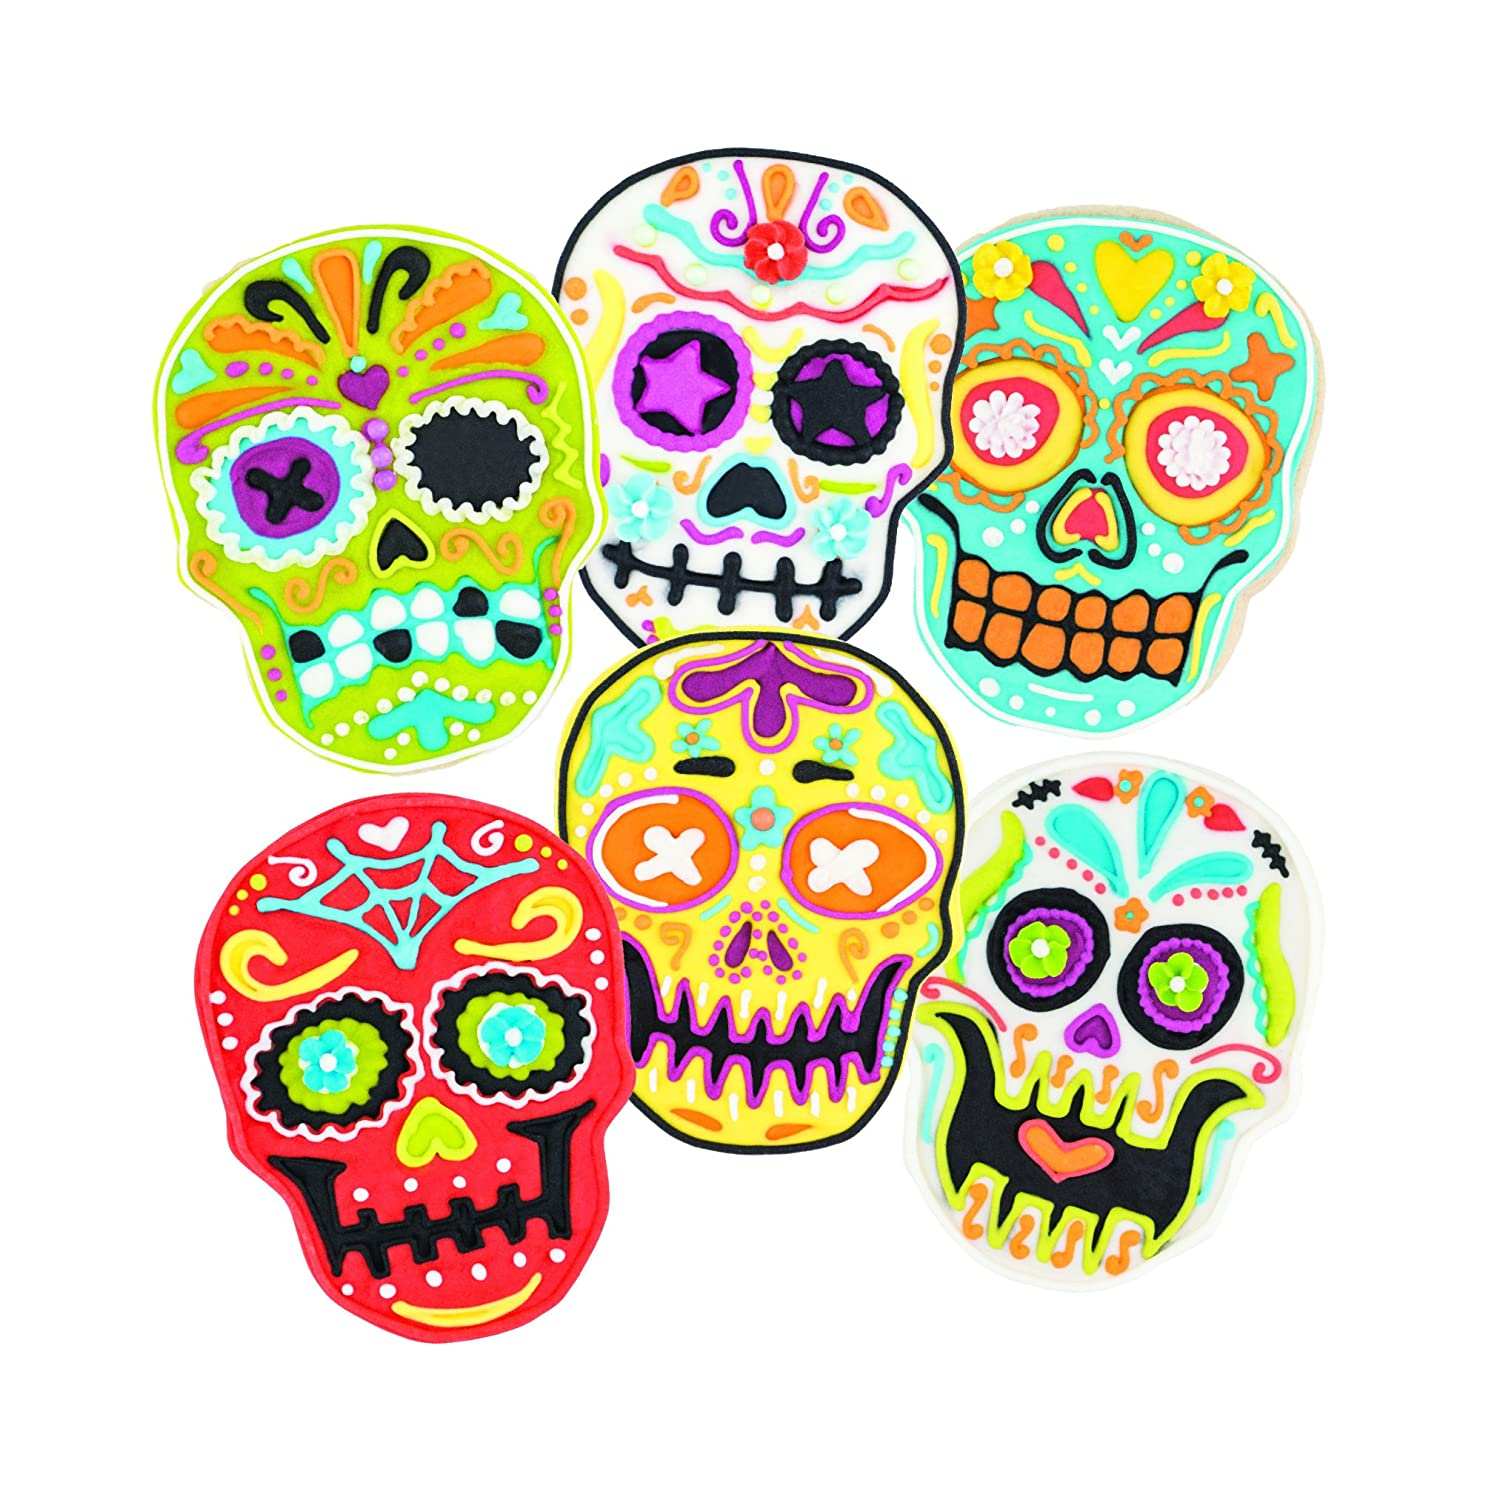 Tovolo Sugar Skull Cookie Cutter, White 81-22492